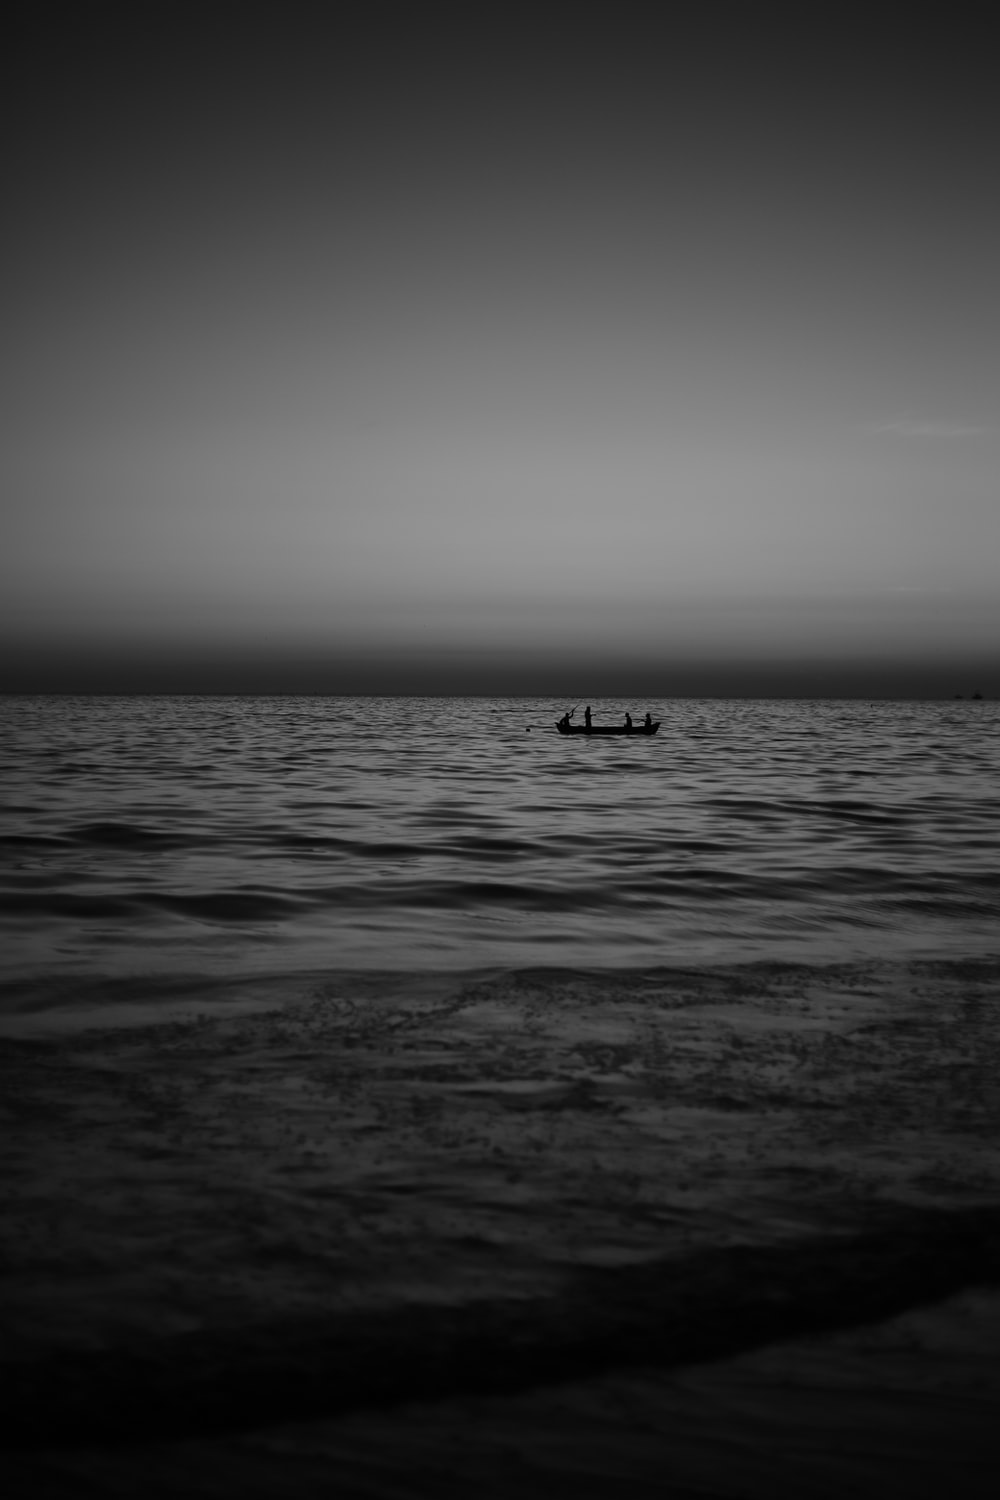 grayscale photo of person riding on boat on sea